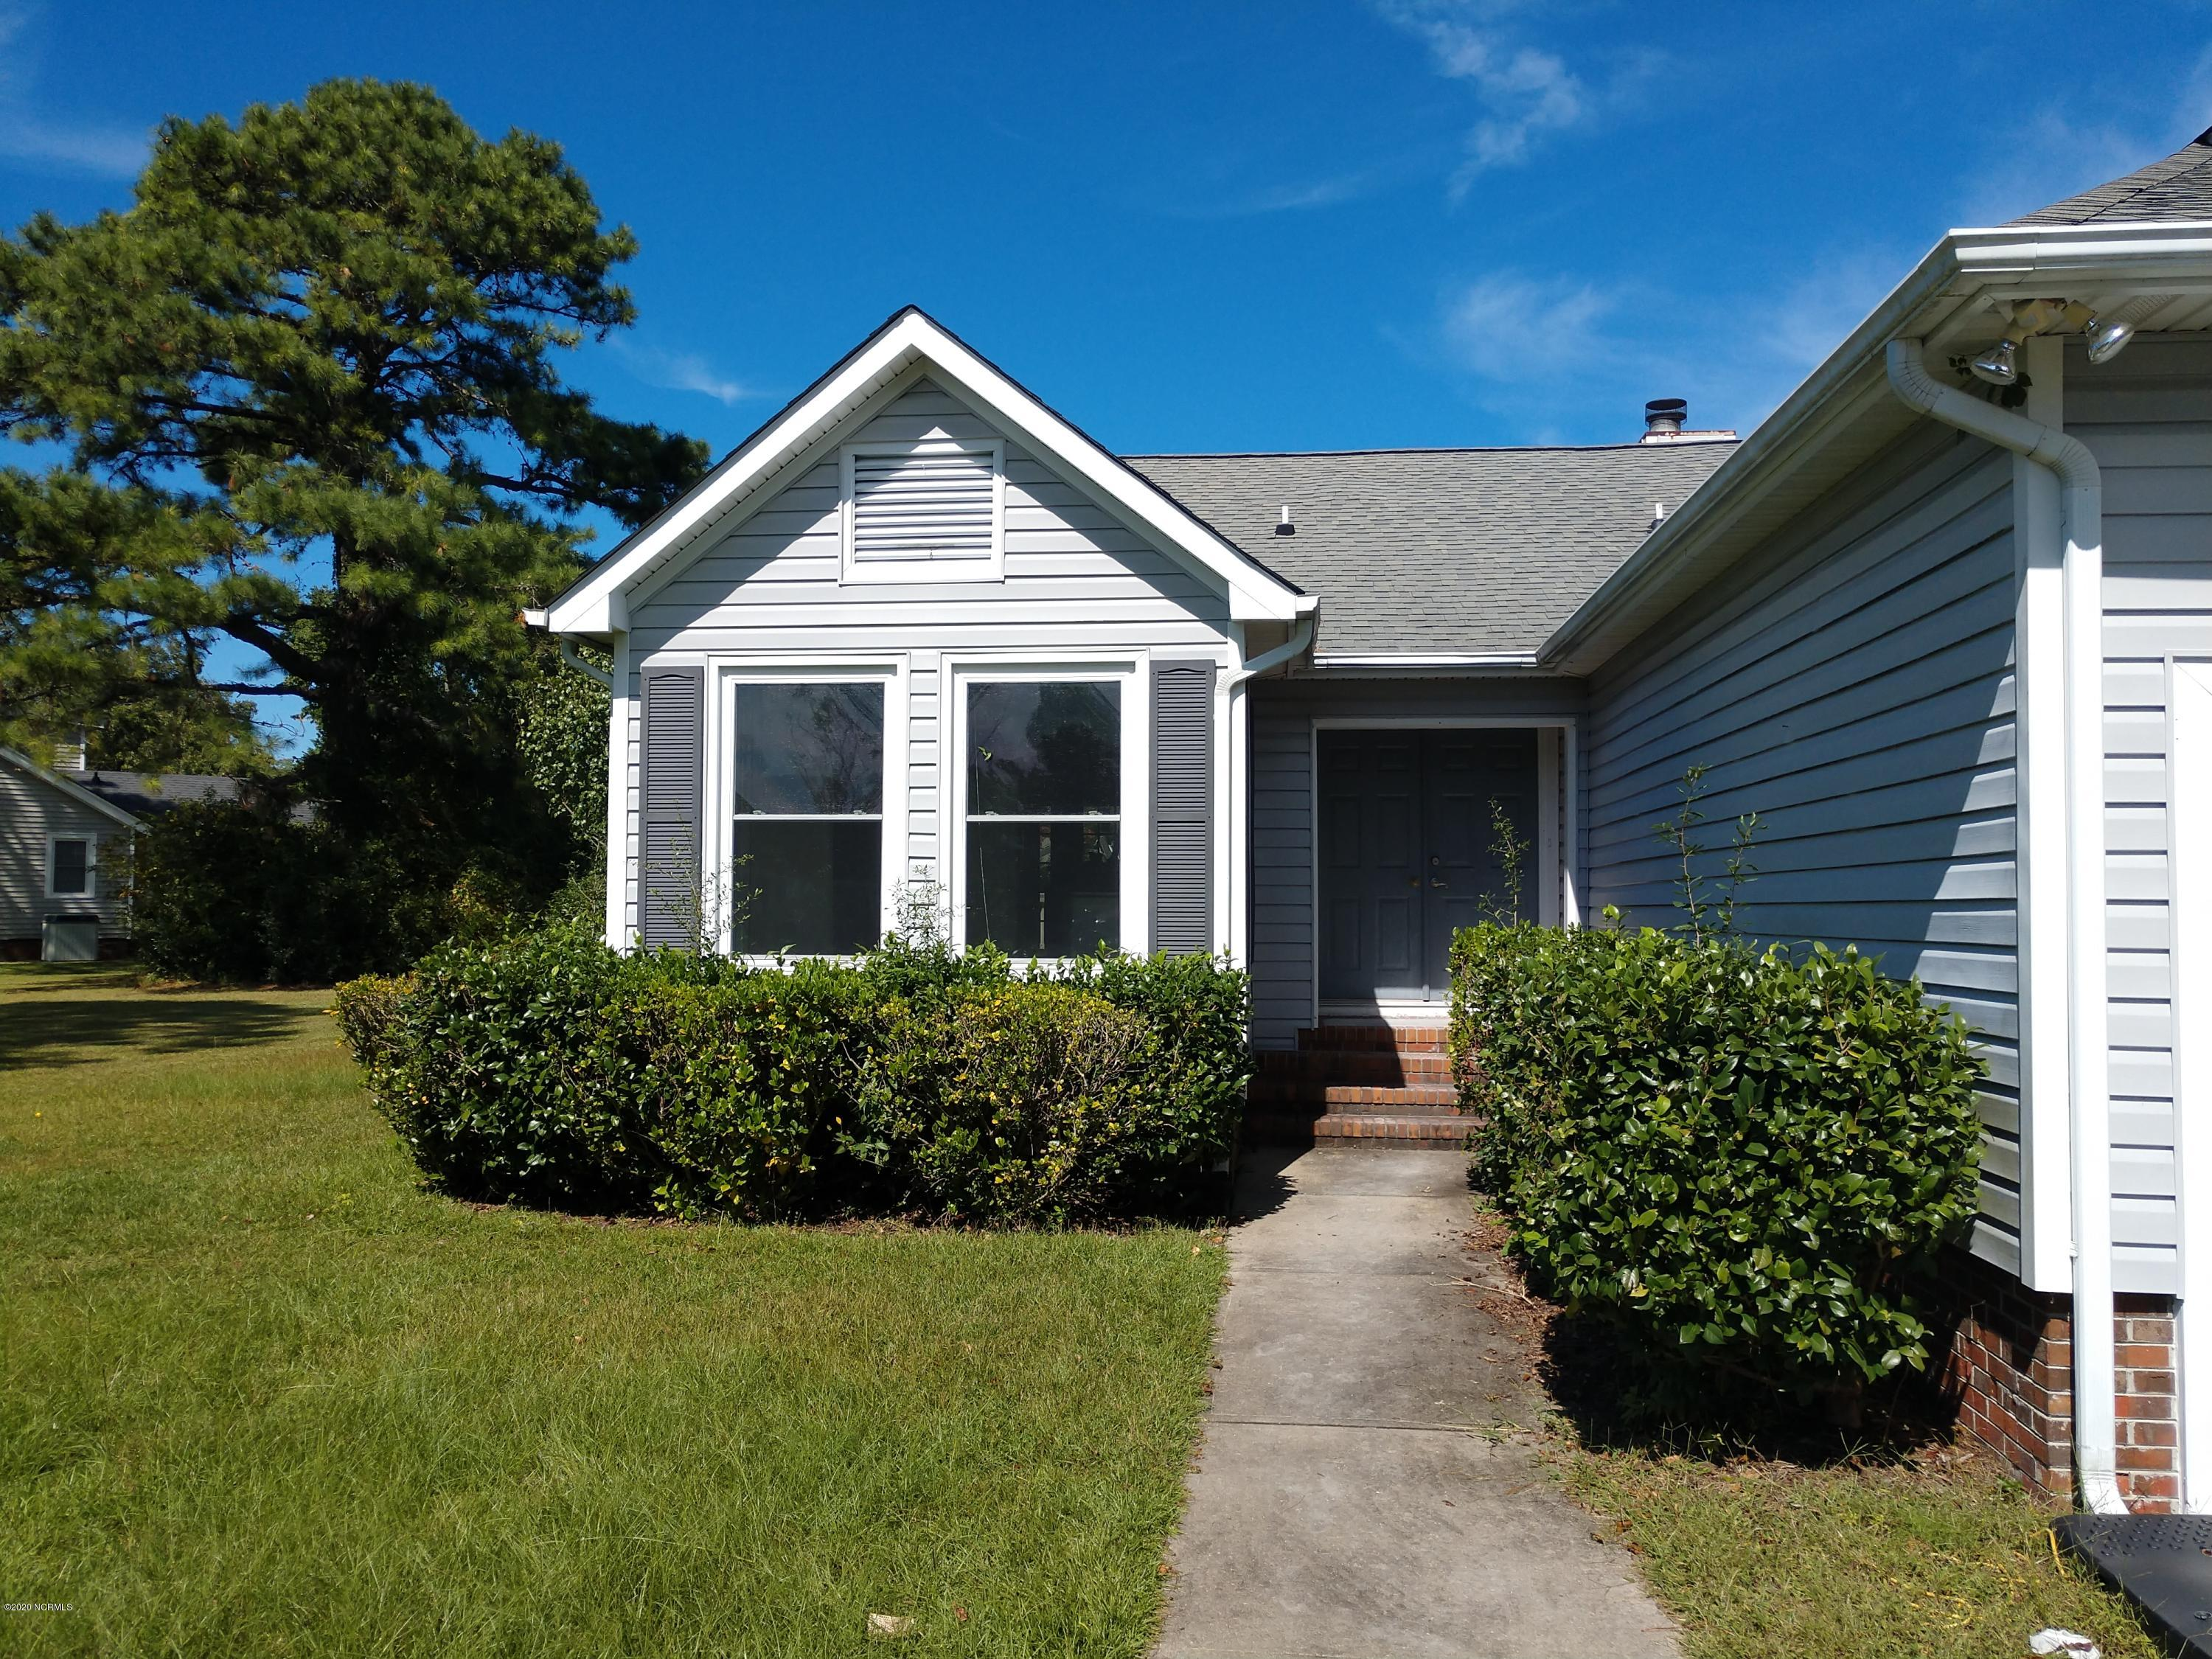 6113 Schooner Court, New Bern, North Carolina 28560, 3 Bedrooms Bedrooms, 7 Rooms Rooms,2 BathroomsBathrooms,Single family residence,For sale,Schooner,100239830